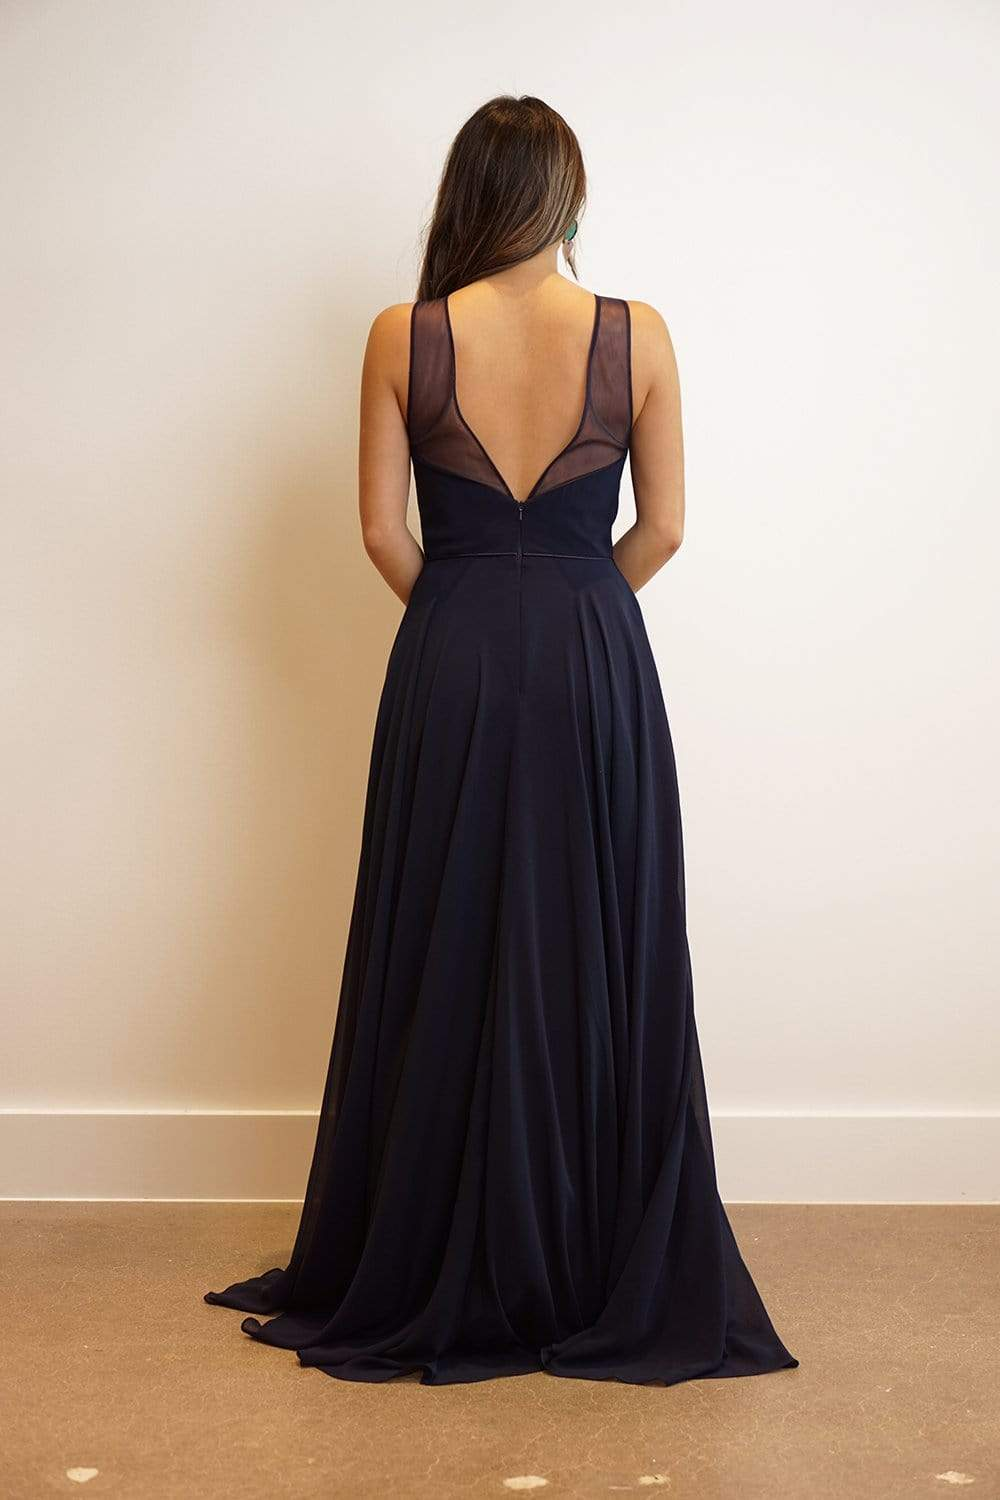 GOWN Sweetheart Bustier with Sheer Neck Netting Fit and Flare Gown - Chloe Dao